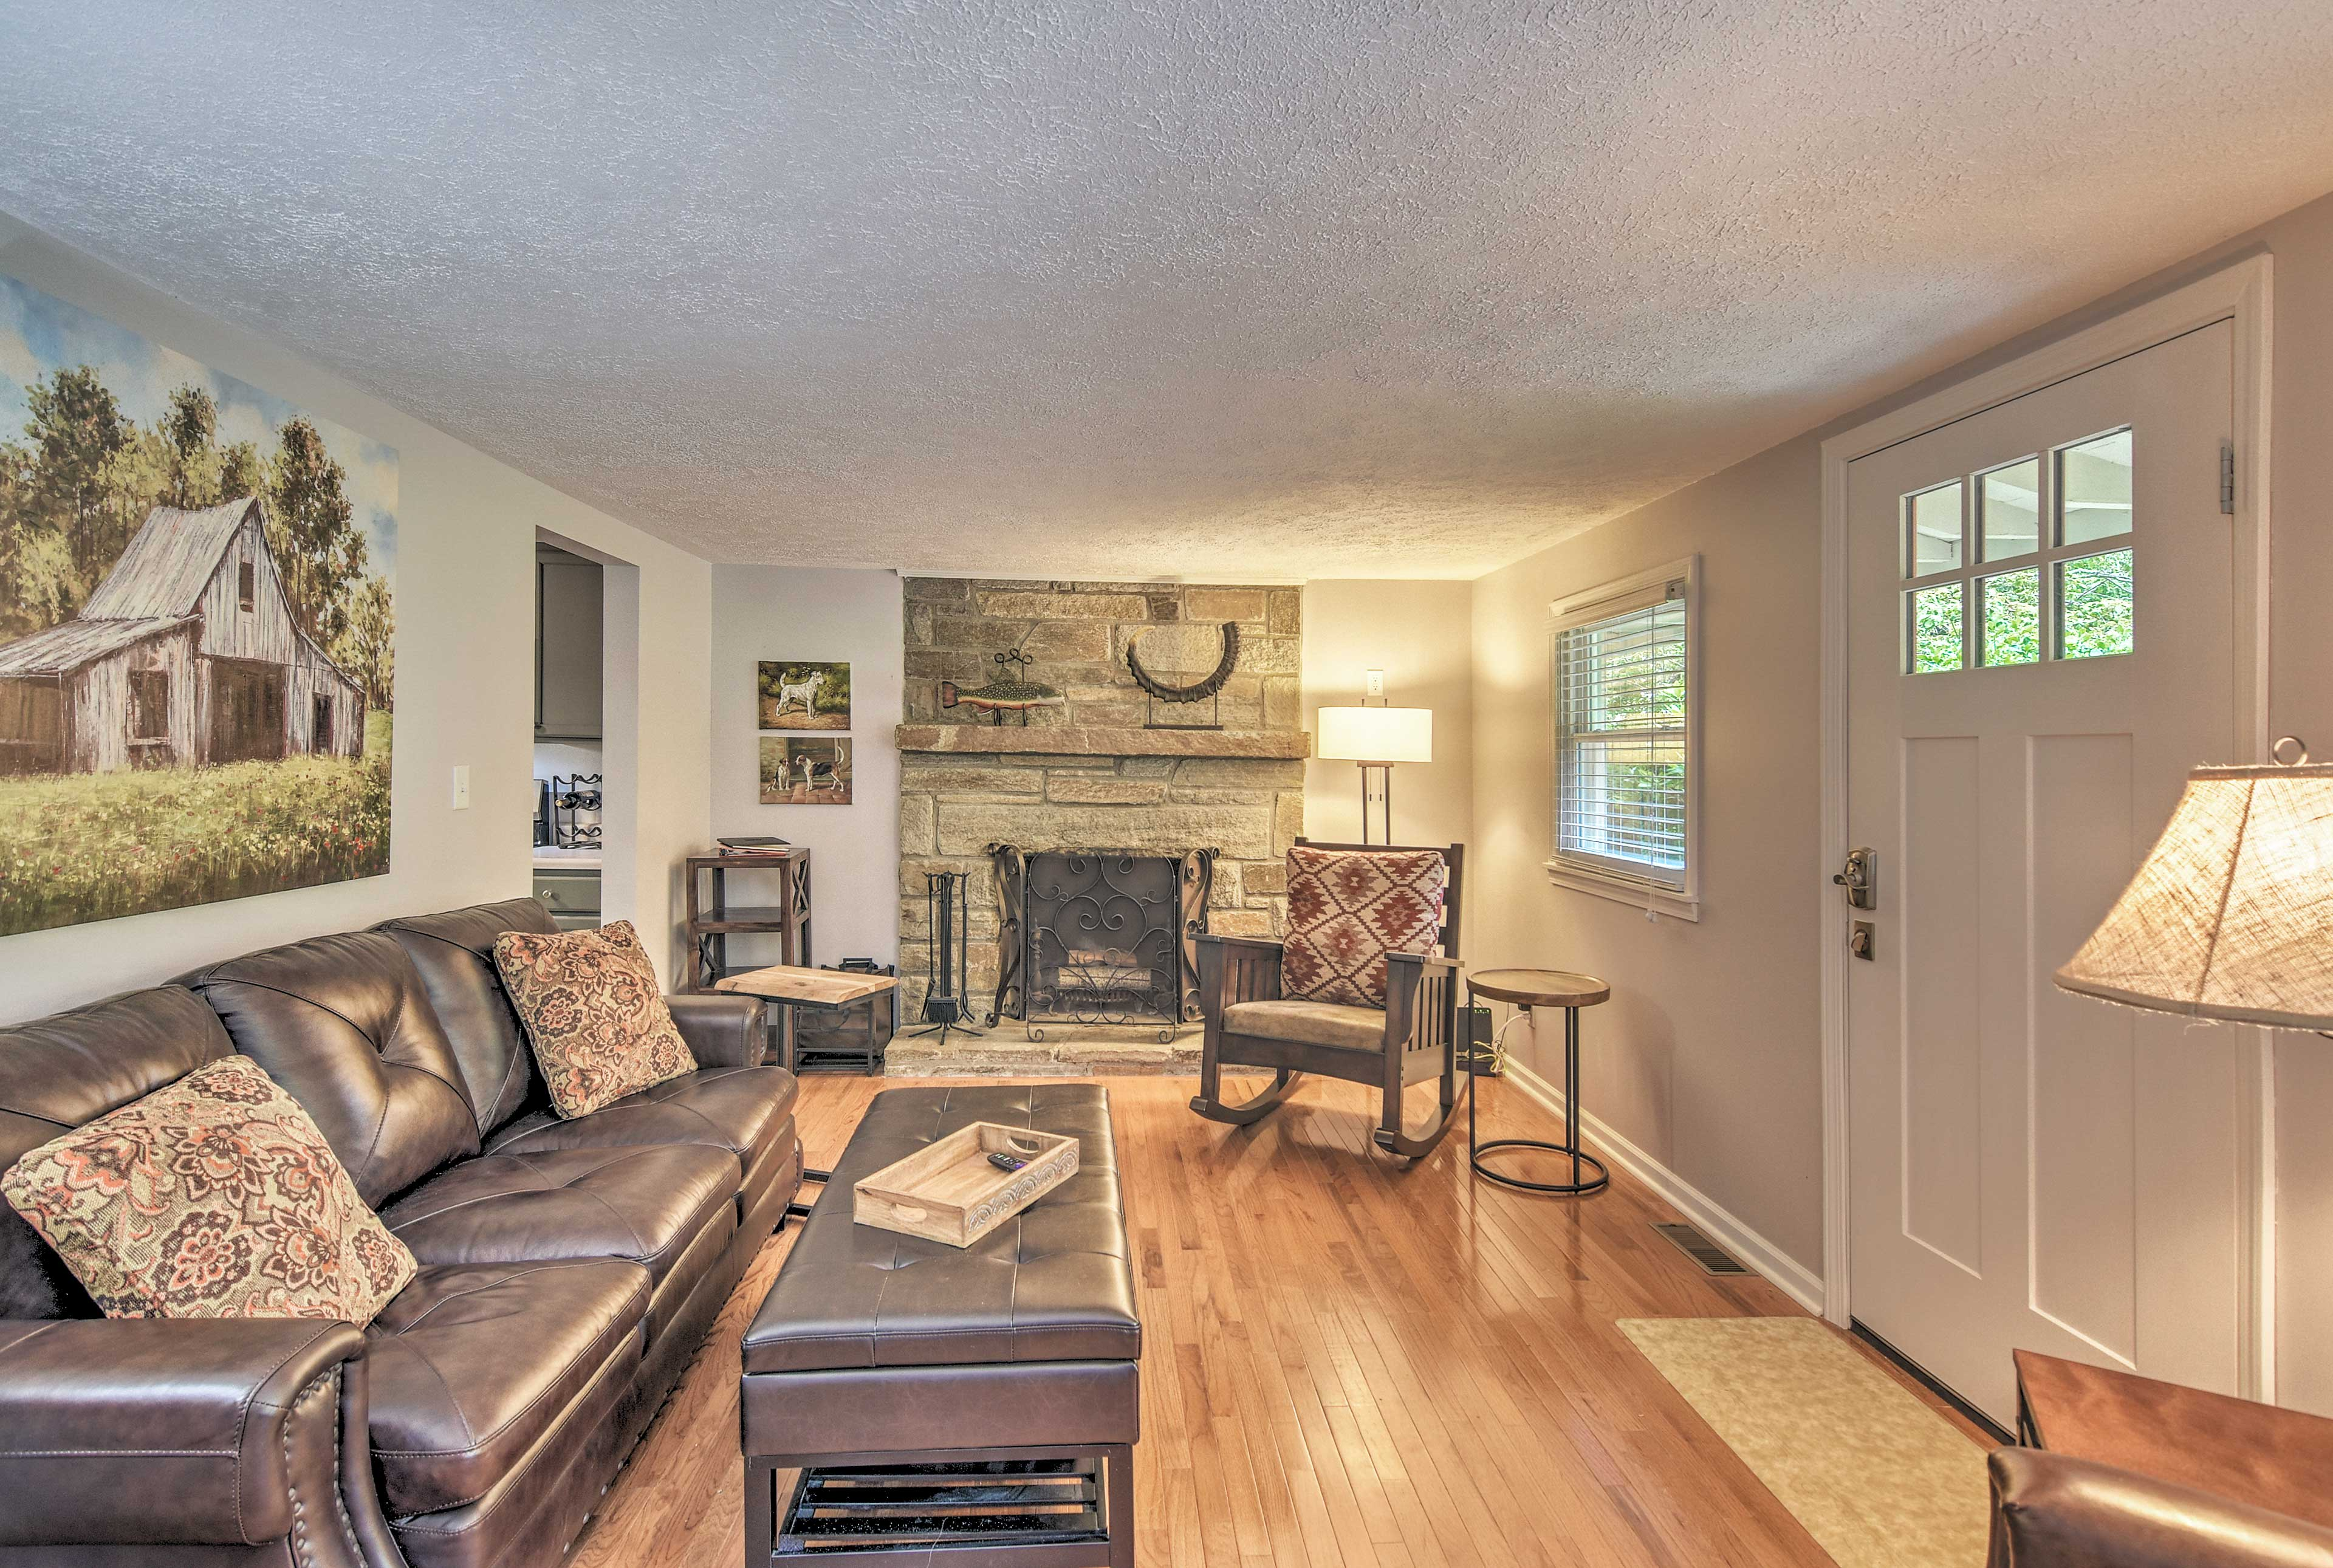 With 2 bedrooms and 2 baths, the property is perfect for small families!